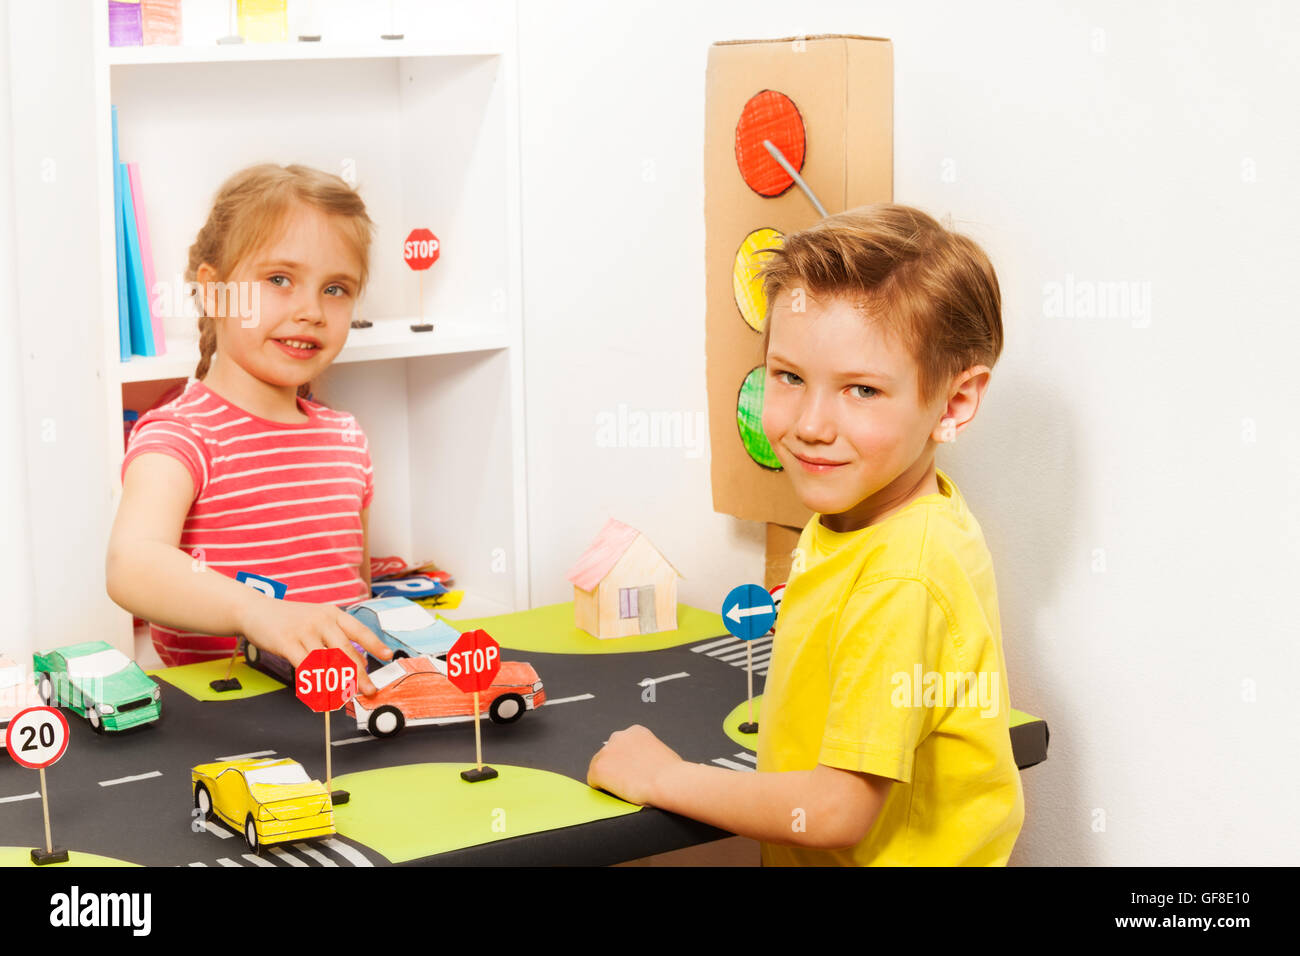 Preschool Boy And Girl At The Road Safety Lesson Stock